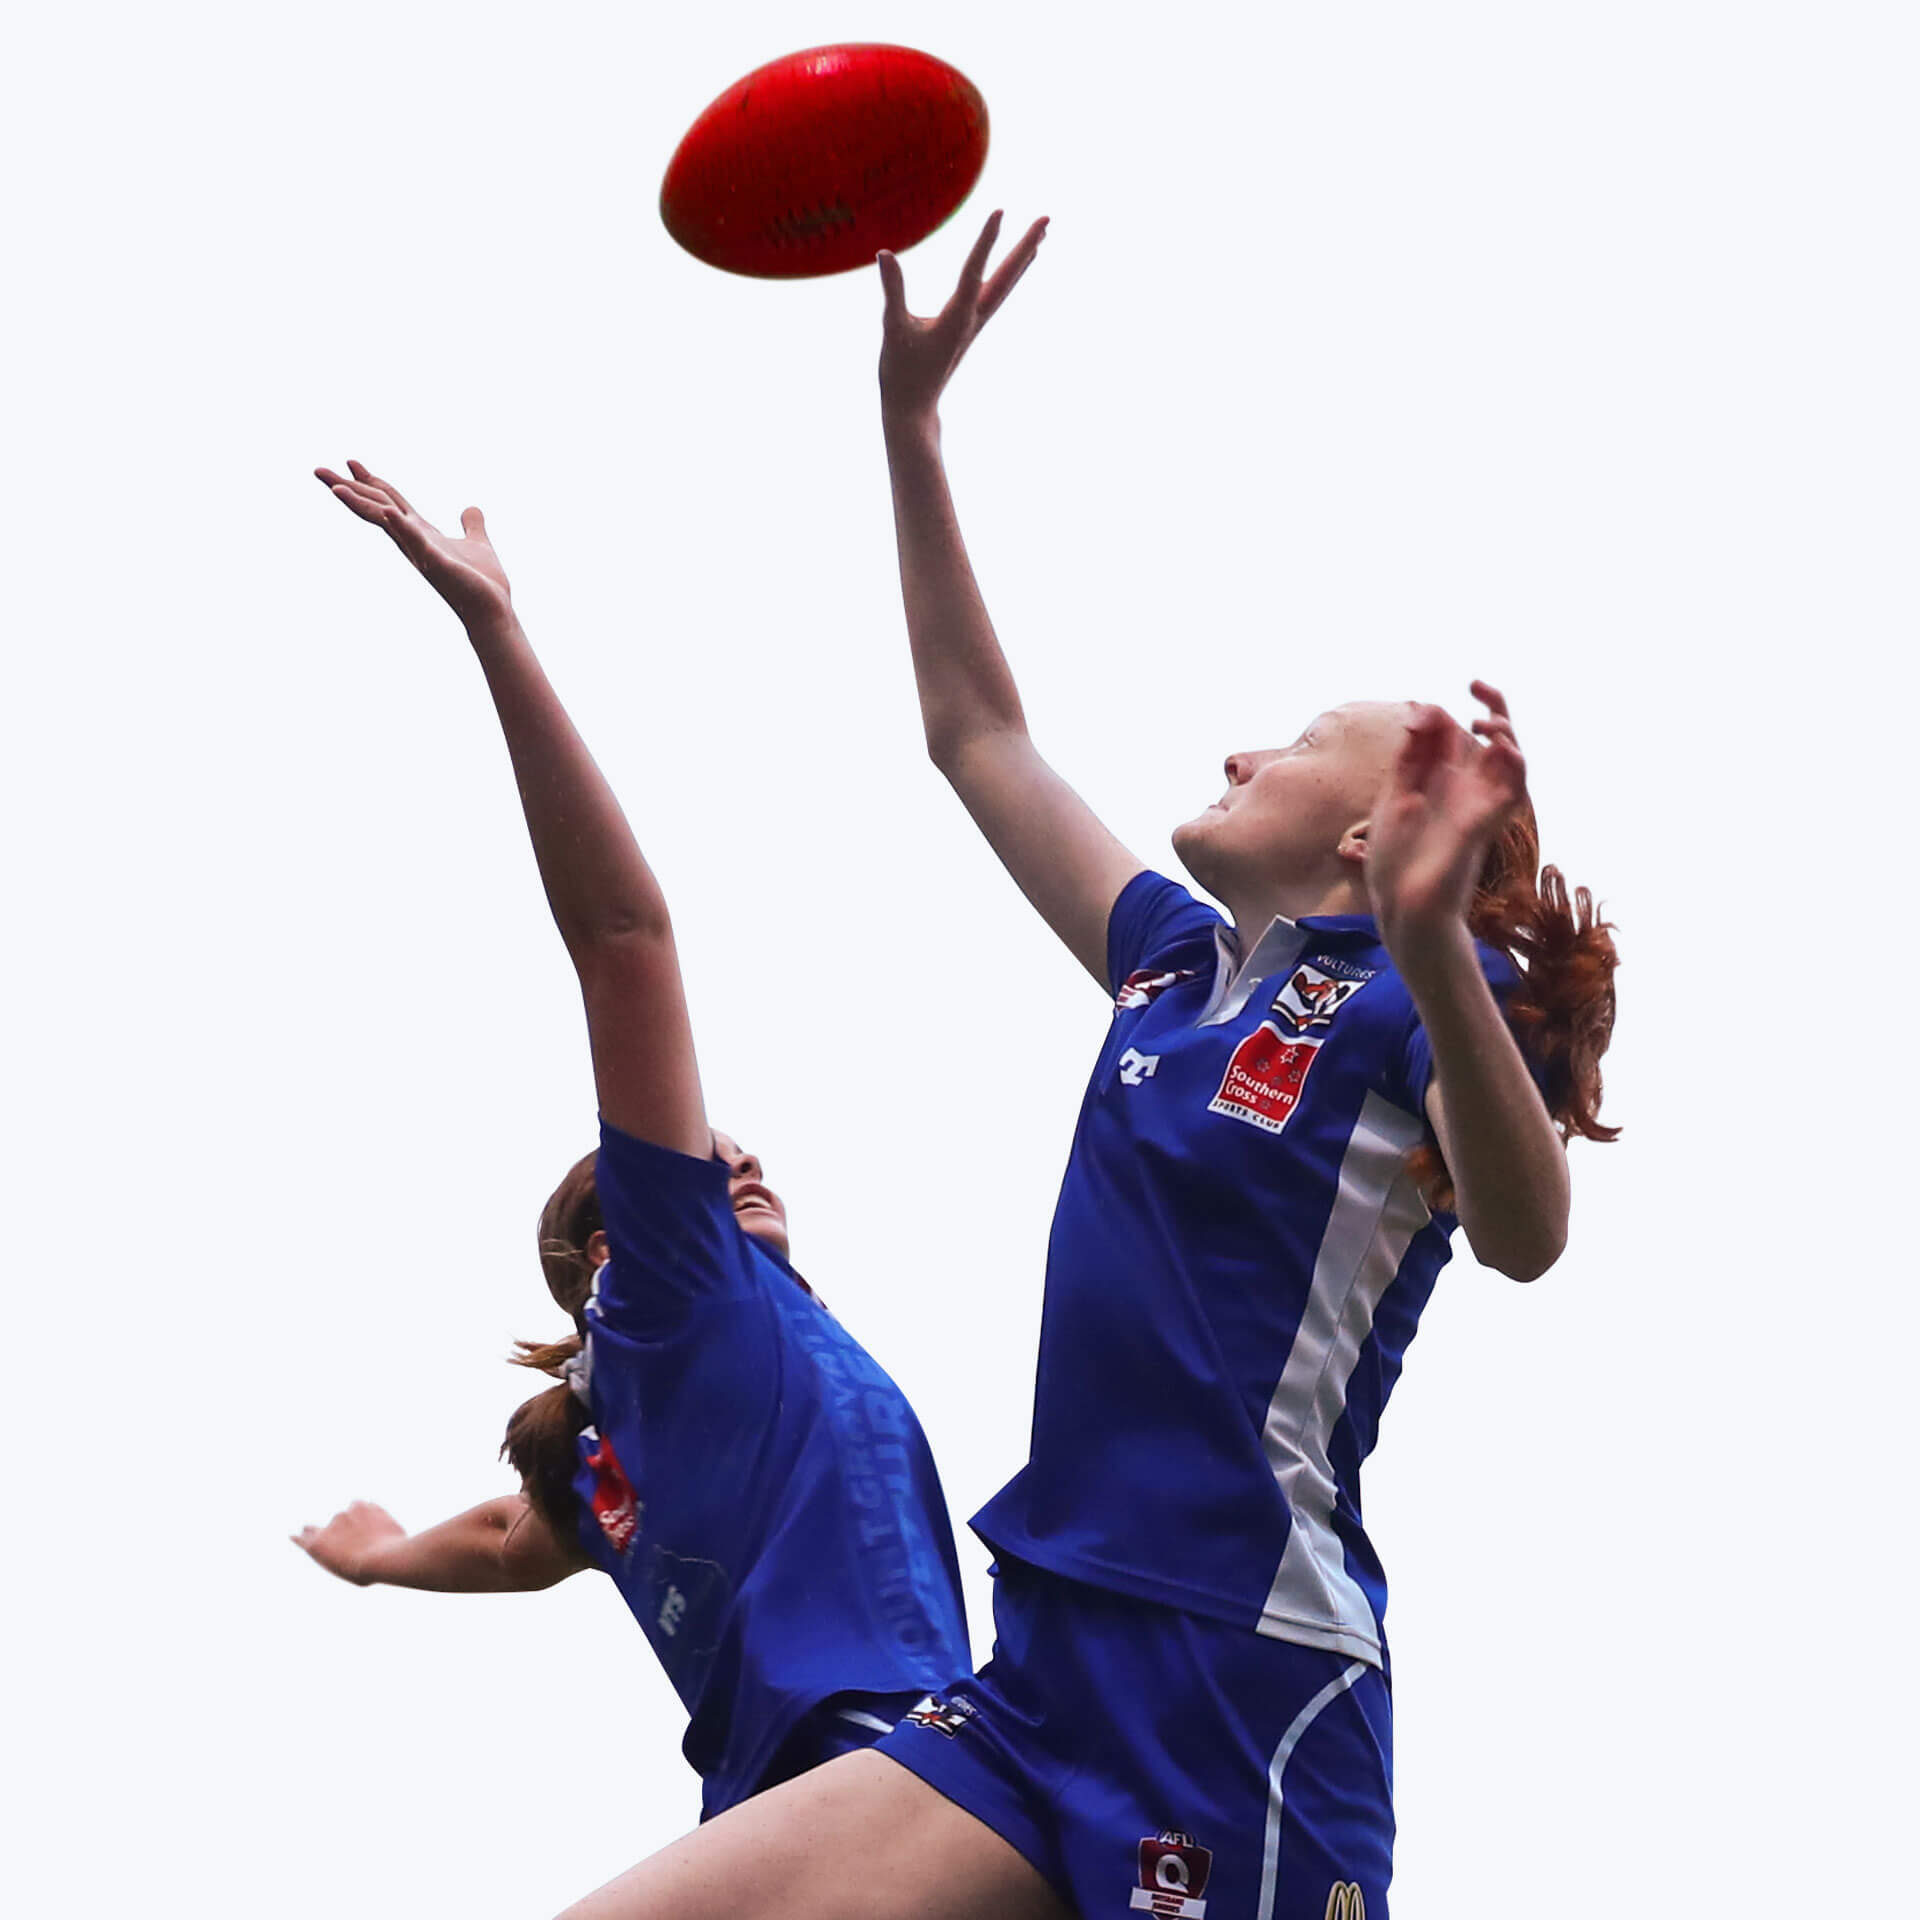 2 young women jumping for a footy ball